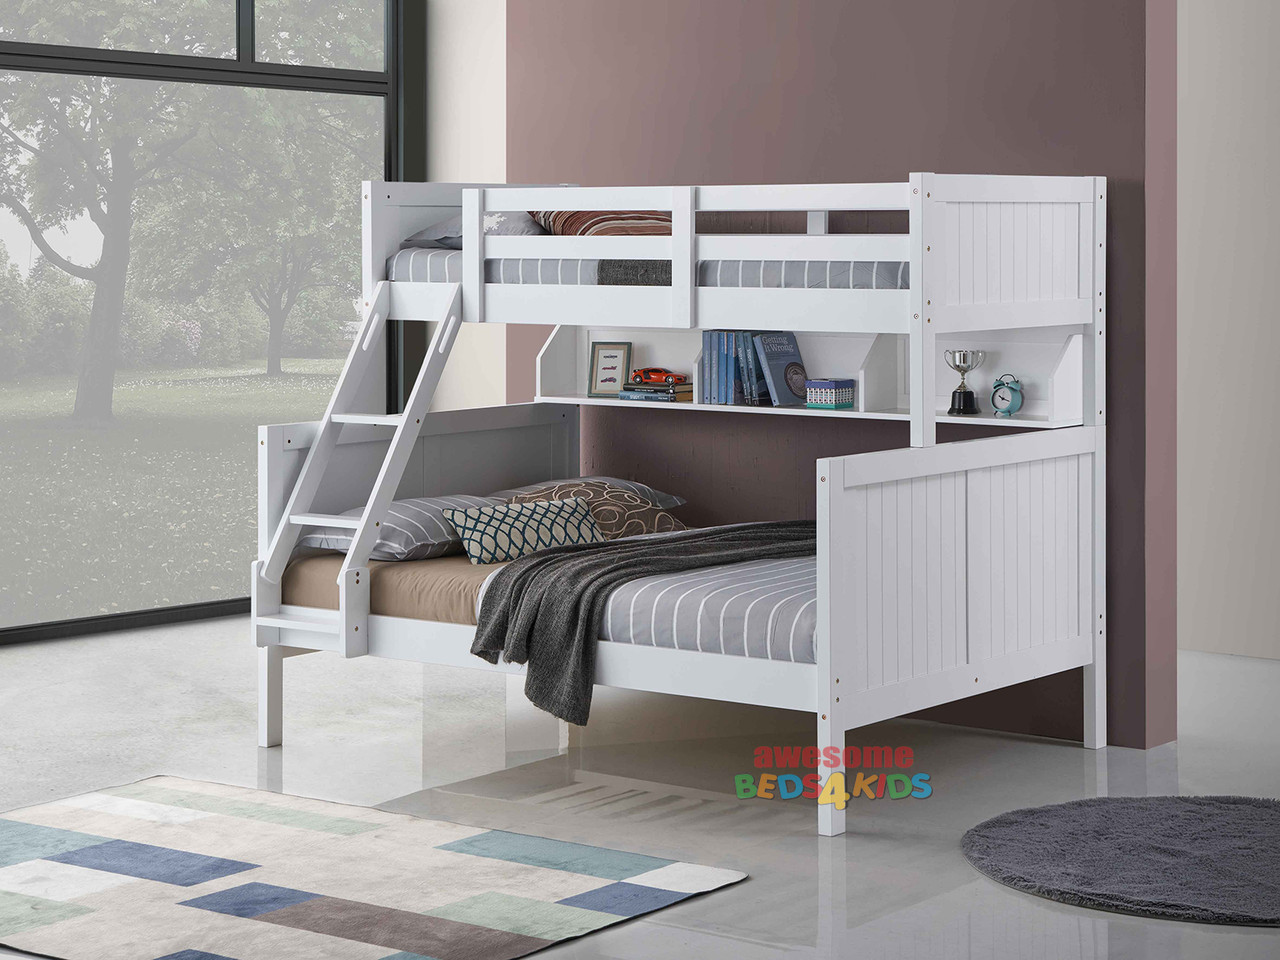 Regatta Single Over Double Bunk features a modern style bunk bed with an closed slated head and foot boards. Great shelf storage for the bottom bunk.